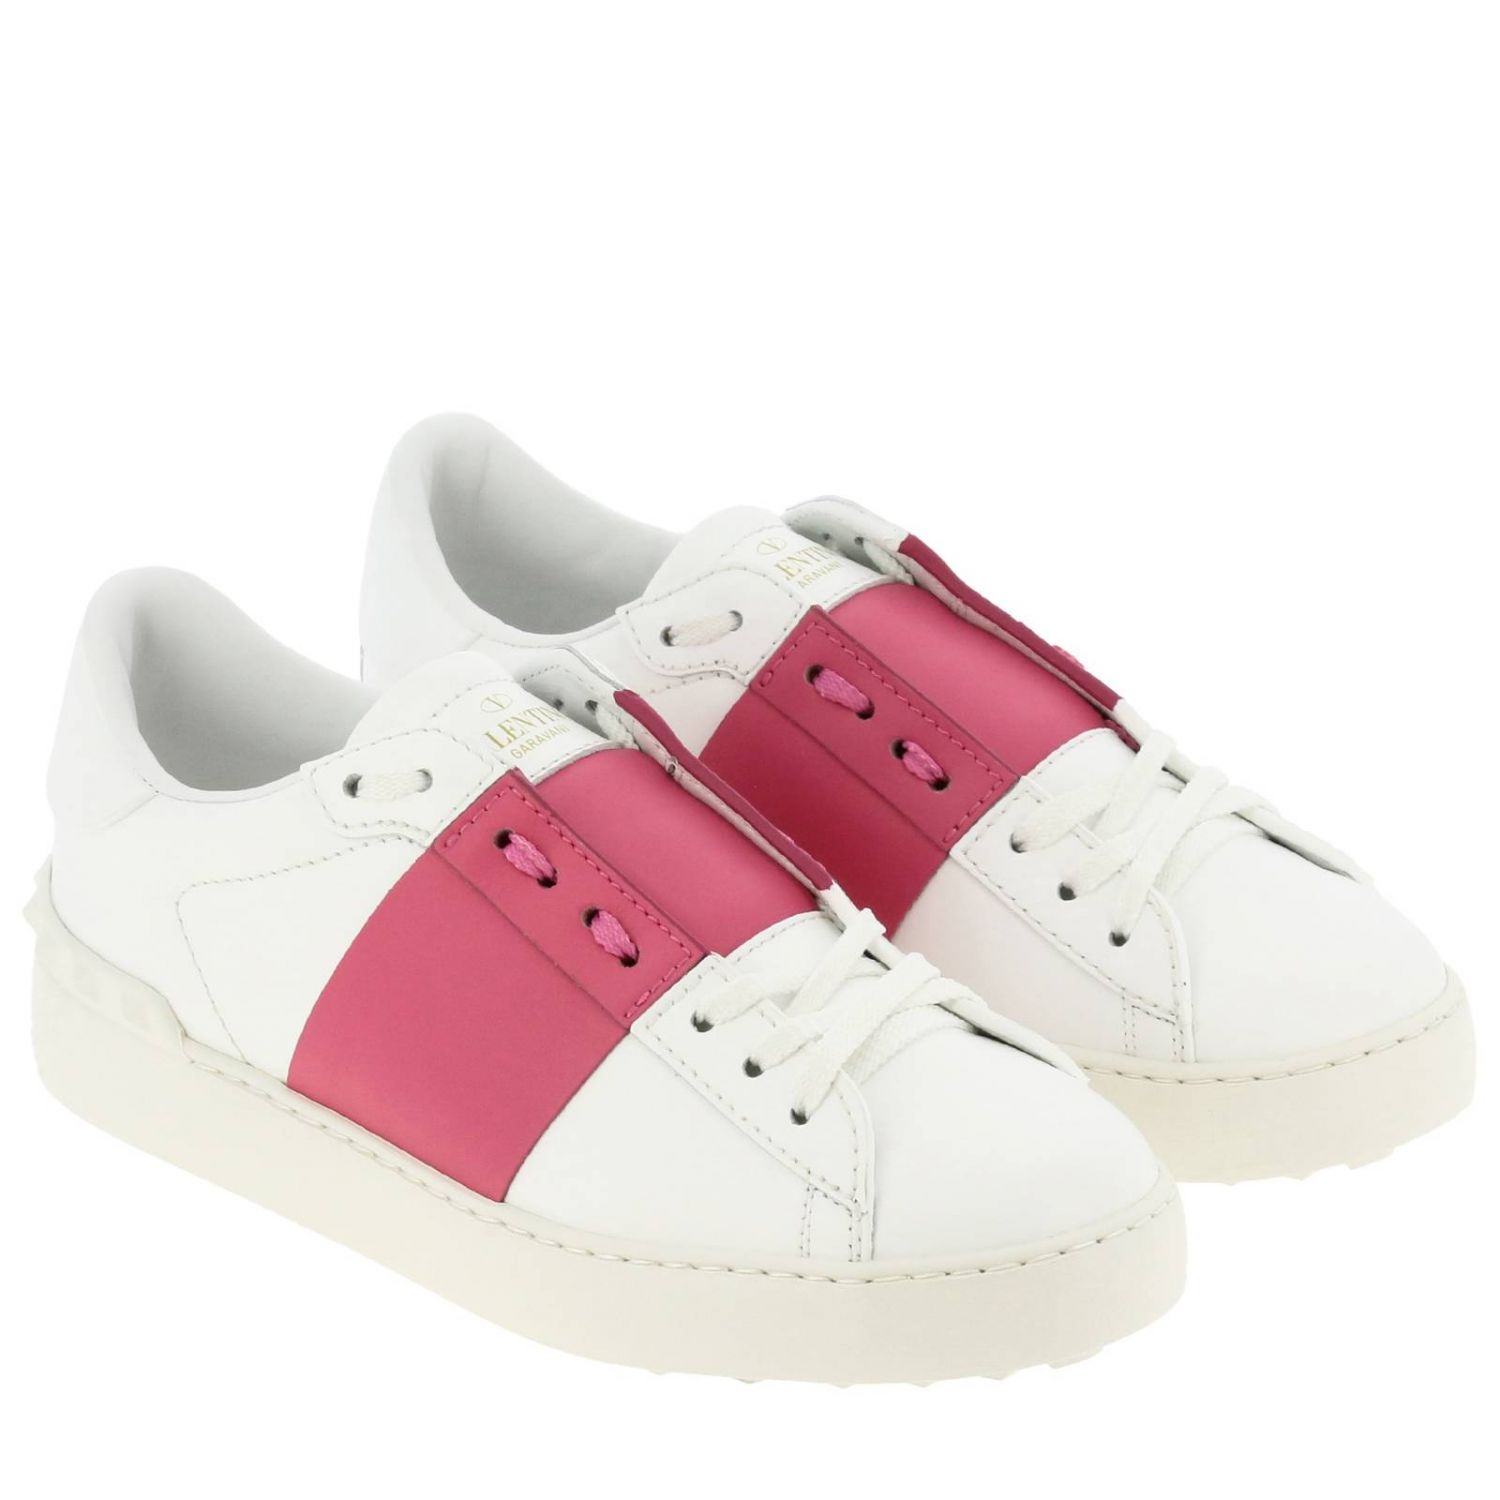 Open Rockstud sneakers Valentino Garavani in genuine leather with band white 2